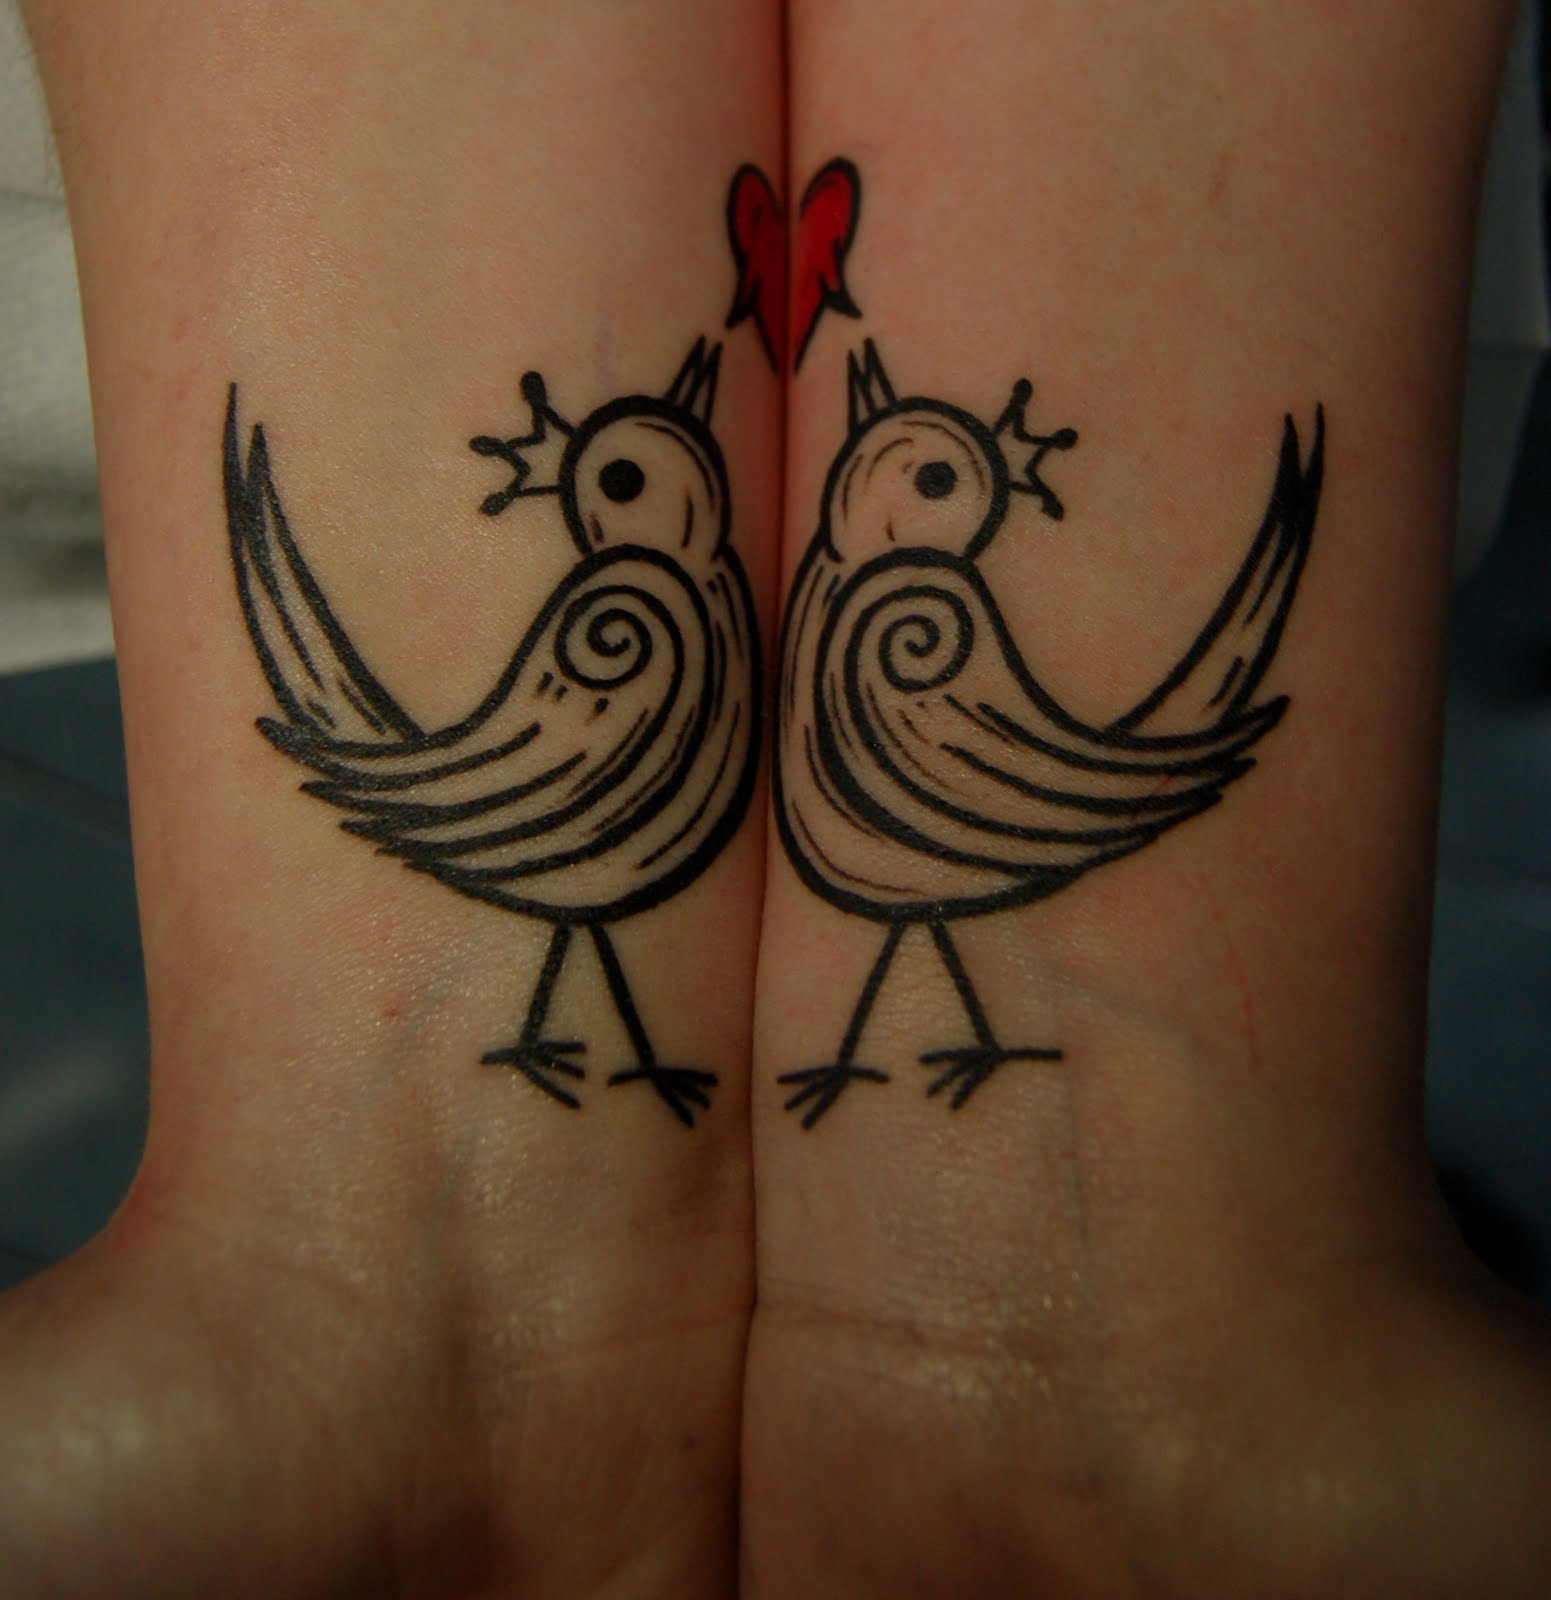 Tattoo Designs For Couples: Gudu Ngiseng Blog: Couple Tattoos Ideas